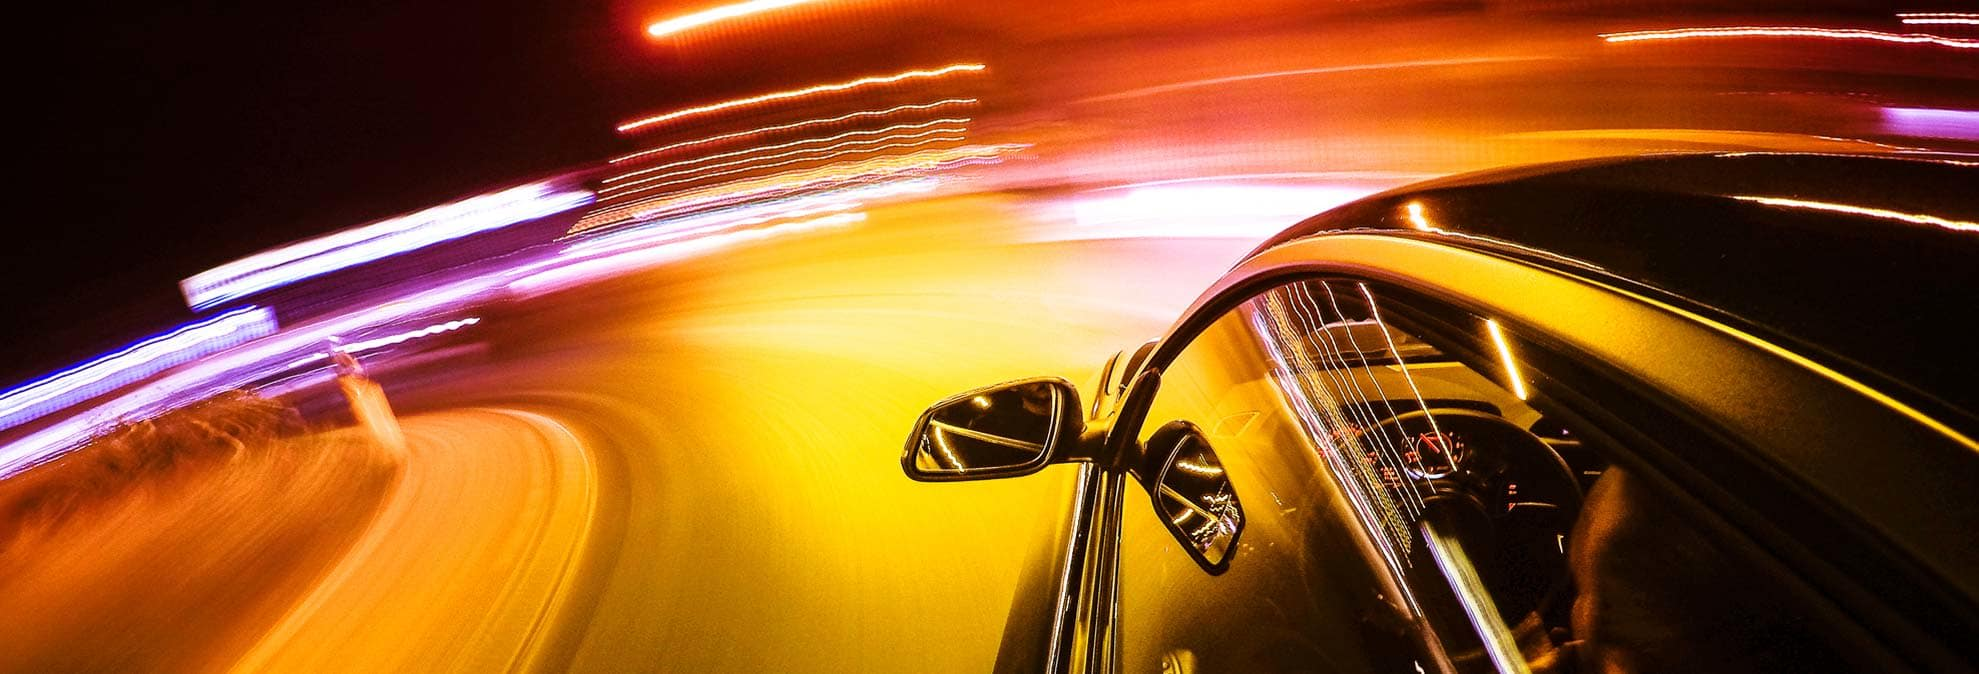 Leasing vs  Buying a New Car - Consumer Reports